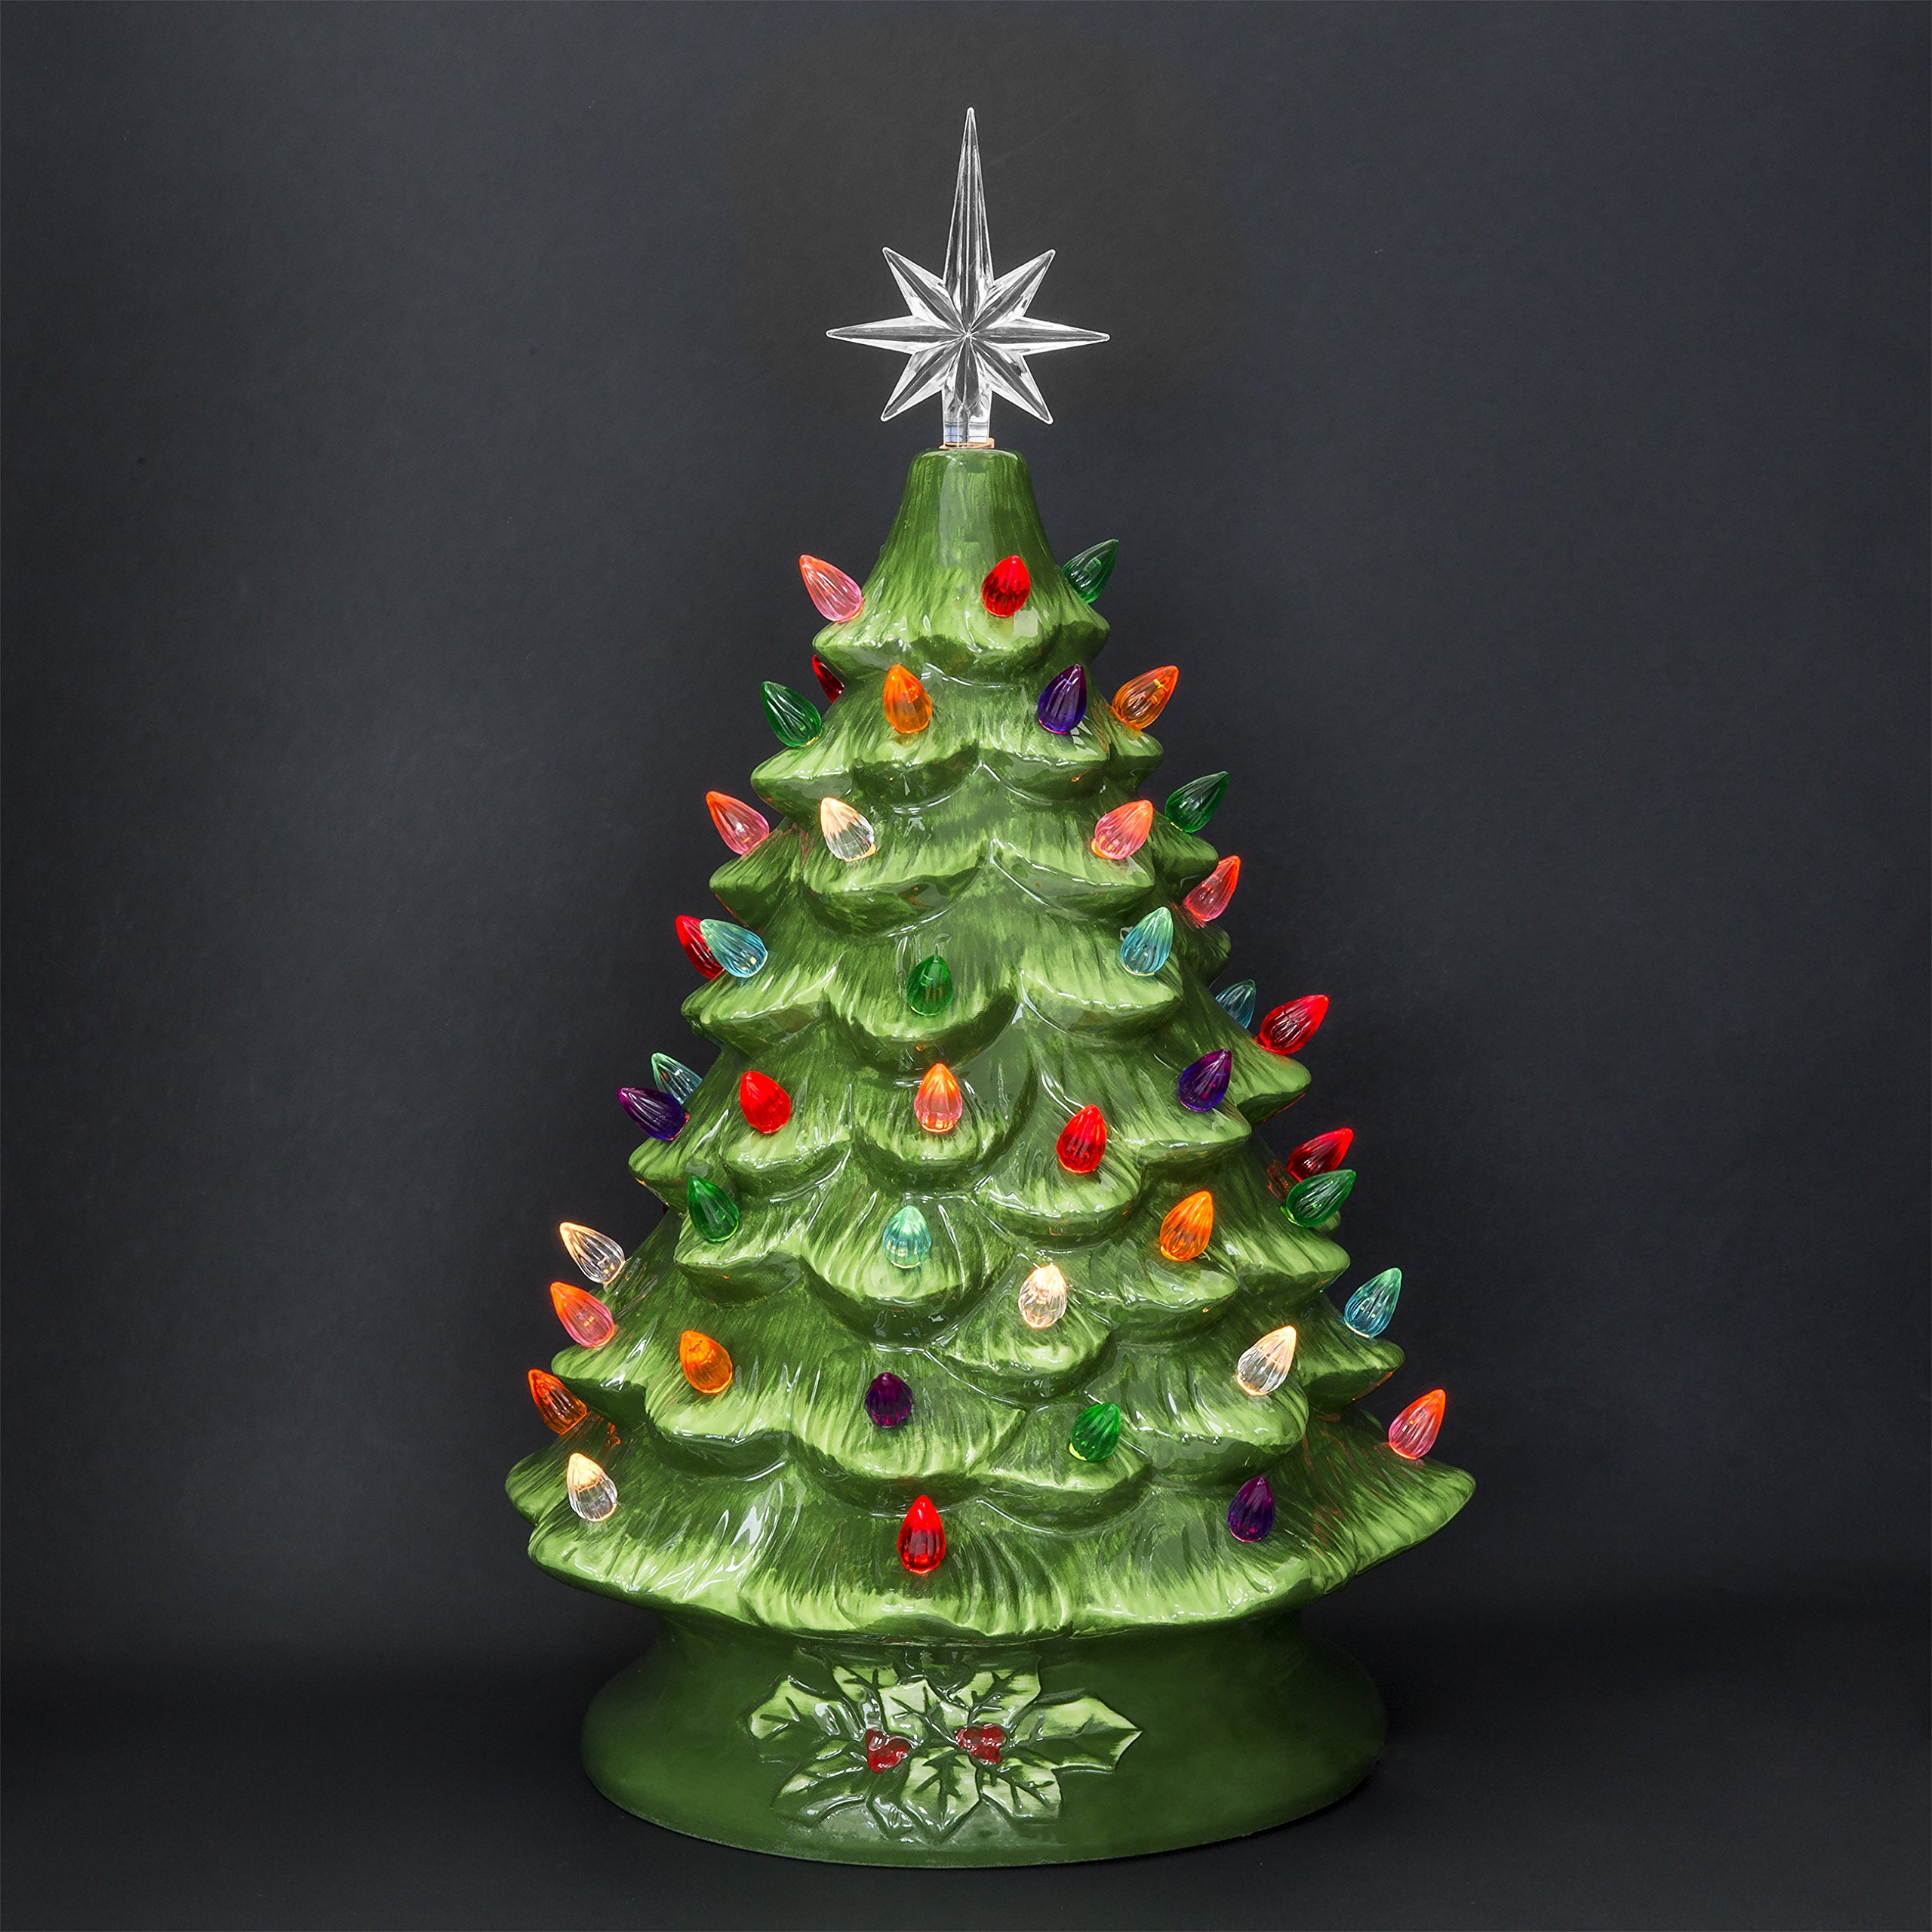 Best Choice Products 15in Pre Lit Hand Painted Ceramic Tabletop Christmas Tree W 50 Lights Star Topper Green